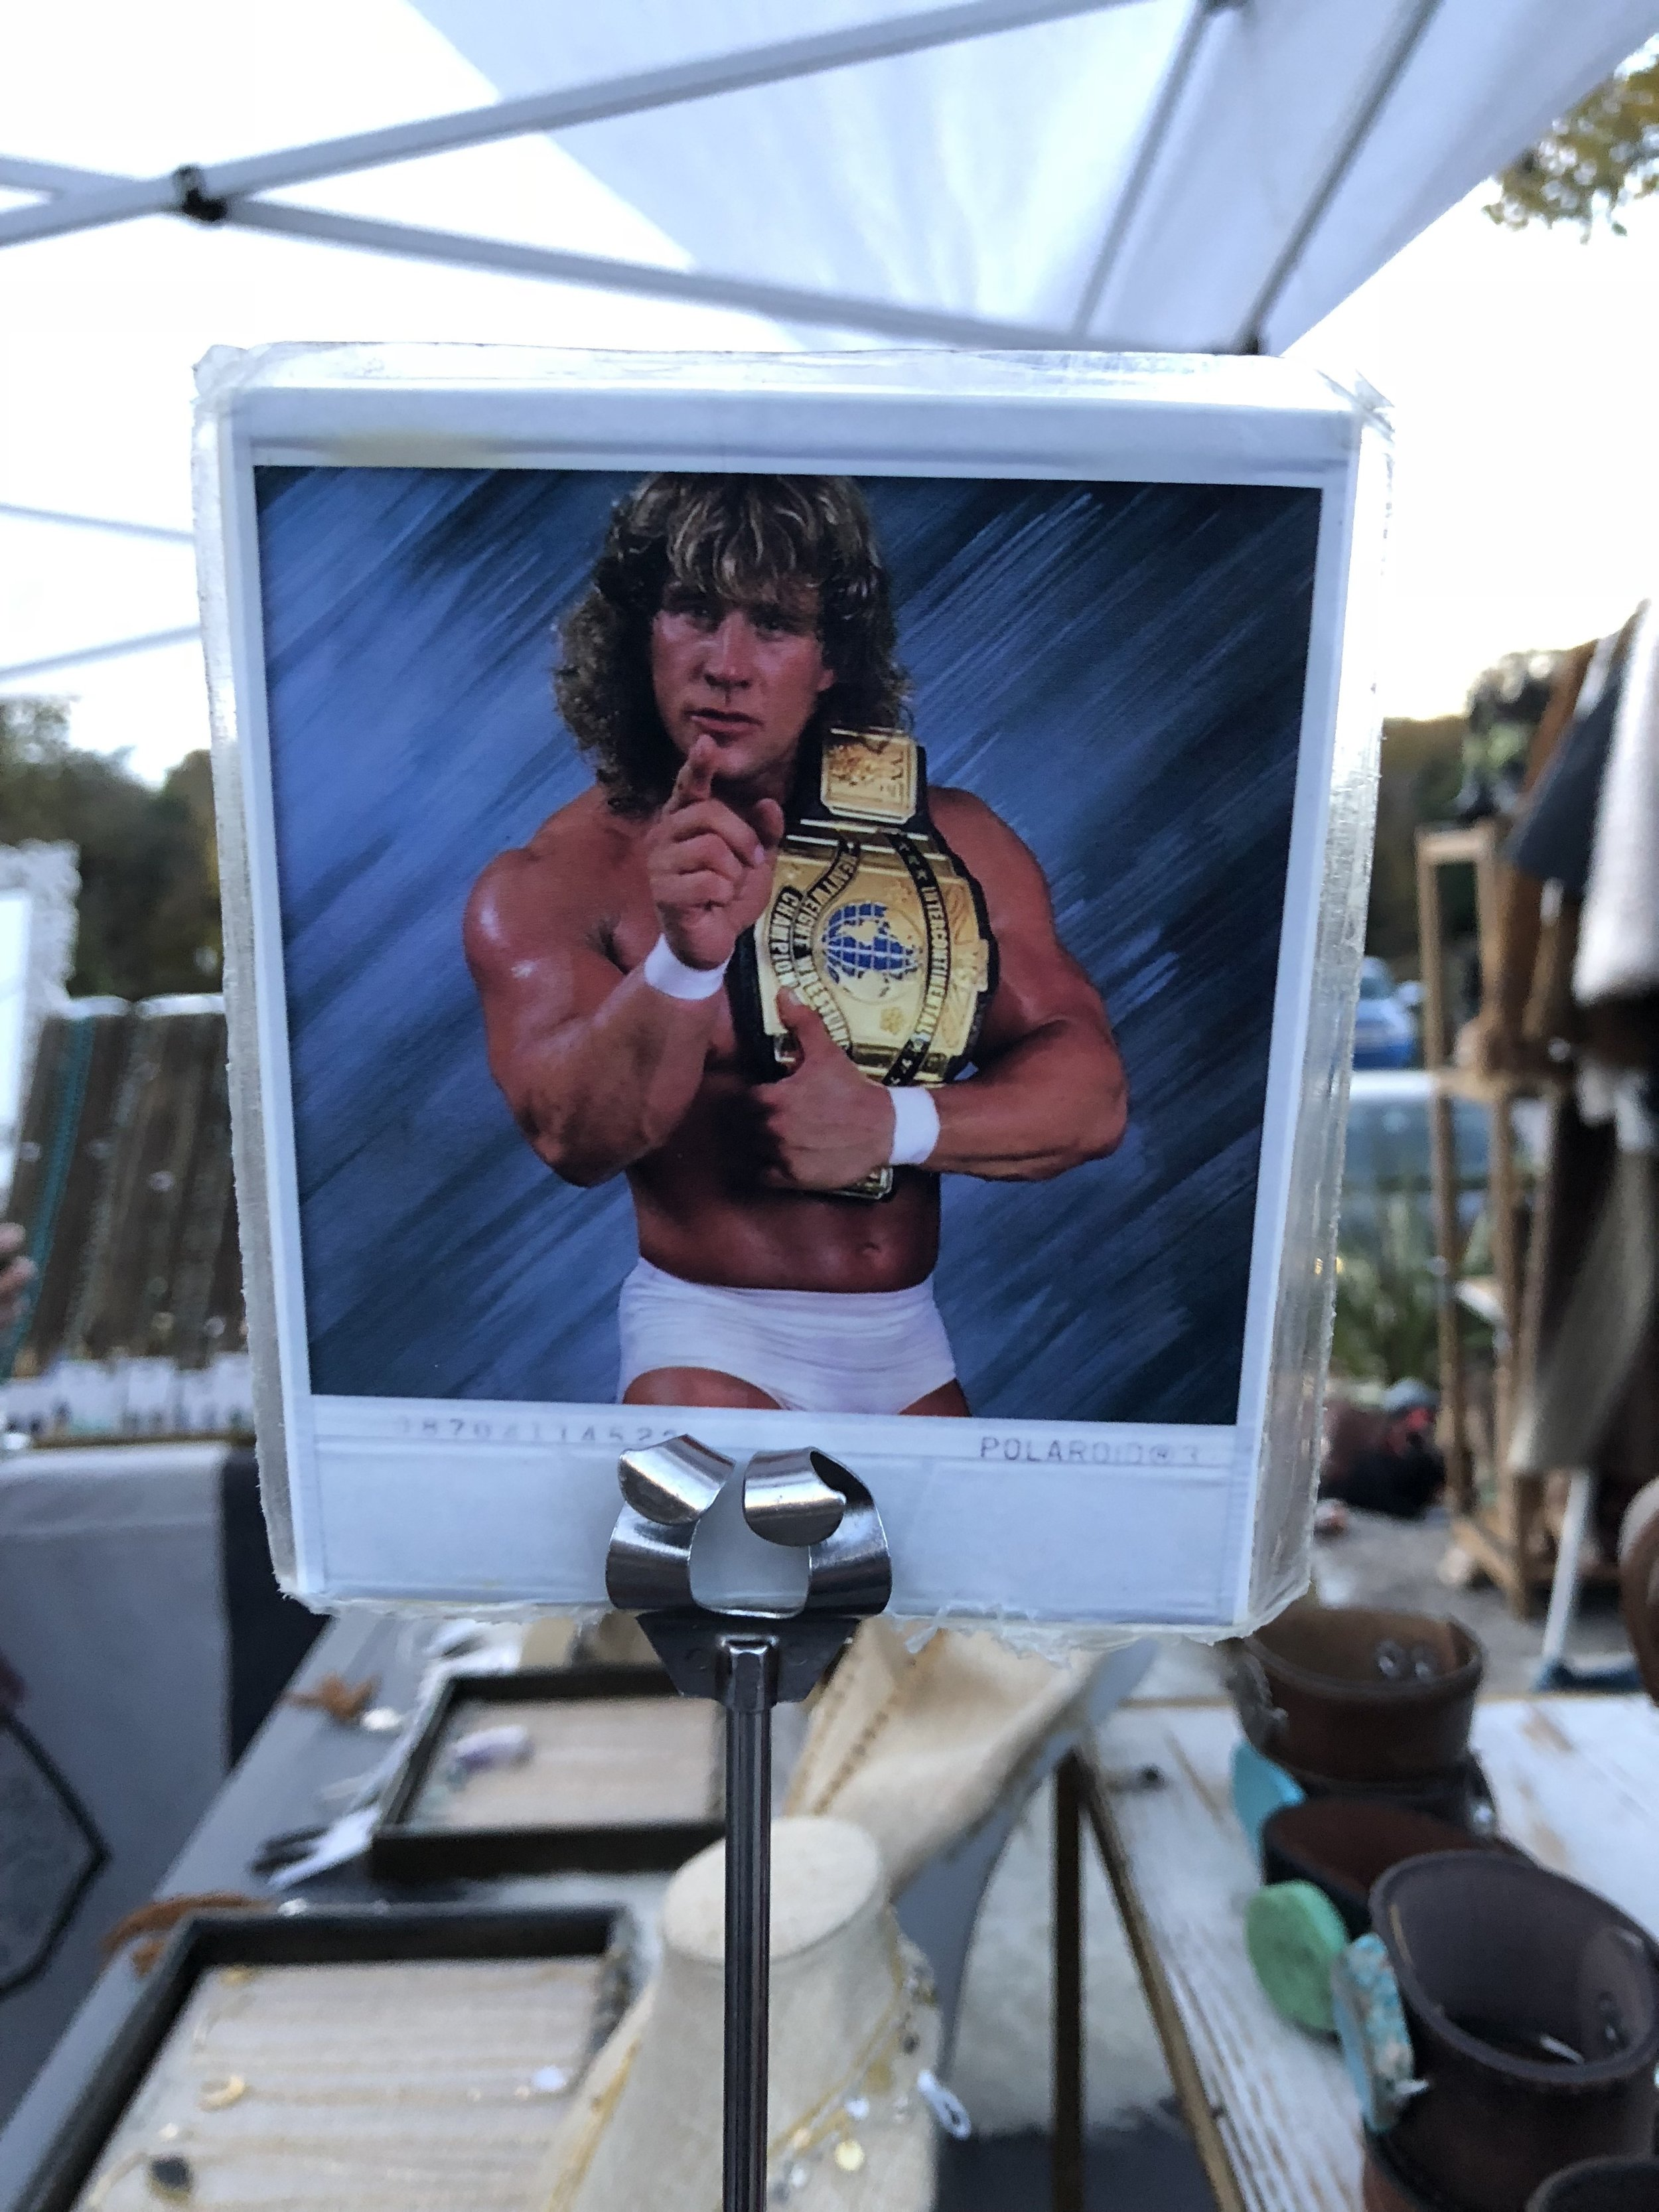 Instead of giving you a number for your order, they give you a picture to place on your table so that they can find you and bring your food. Pictures ranged from old wrestlers and celebrities to cartoon characters.